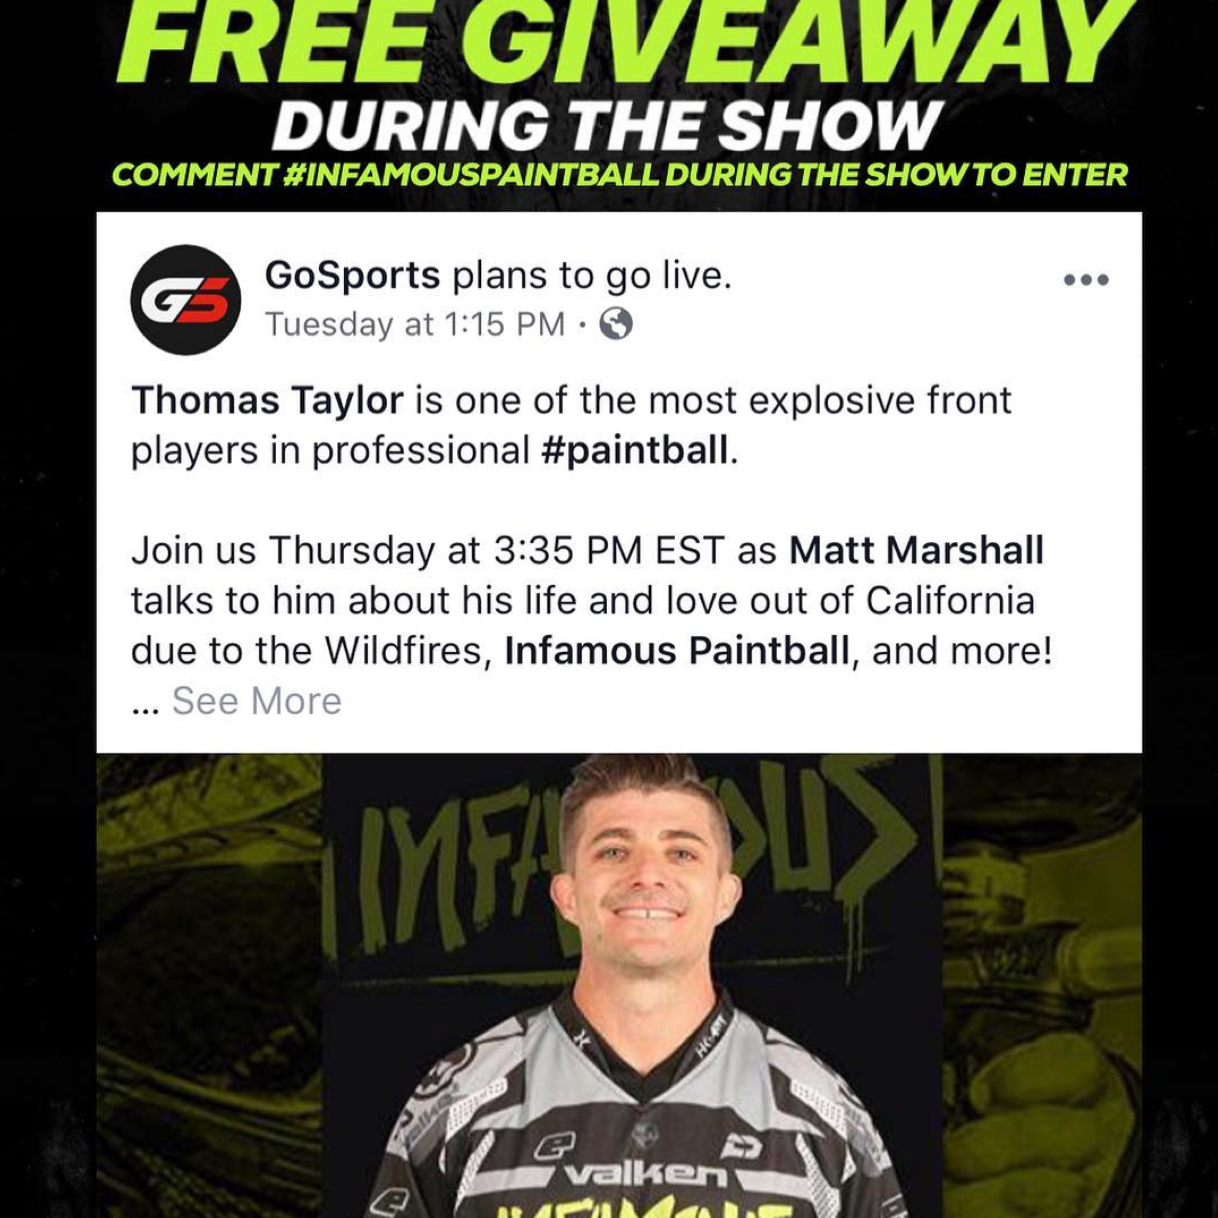 Thomas Taylor LIVE on Gosports - FREE GIVEAWAY